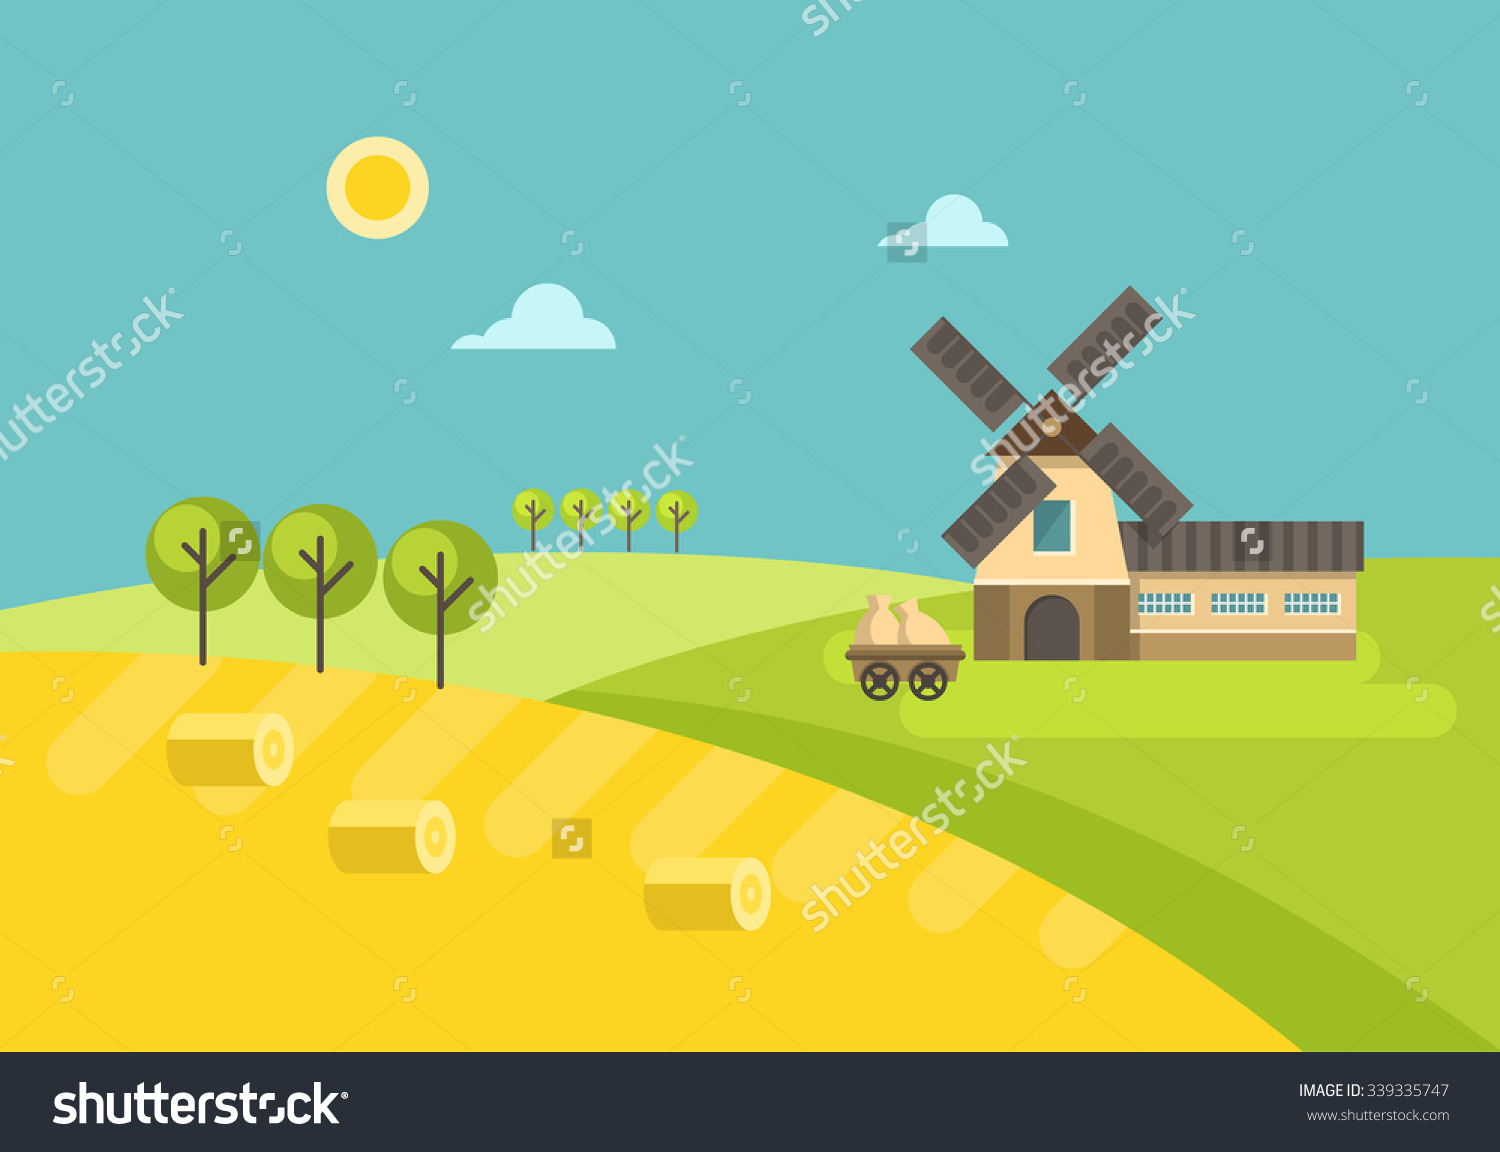 Flat Design Rural Landscape Illustration Mill Stock Vector.